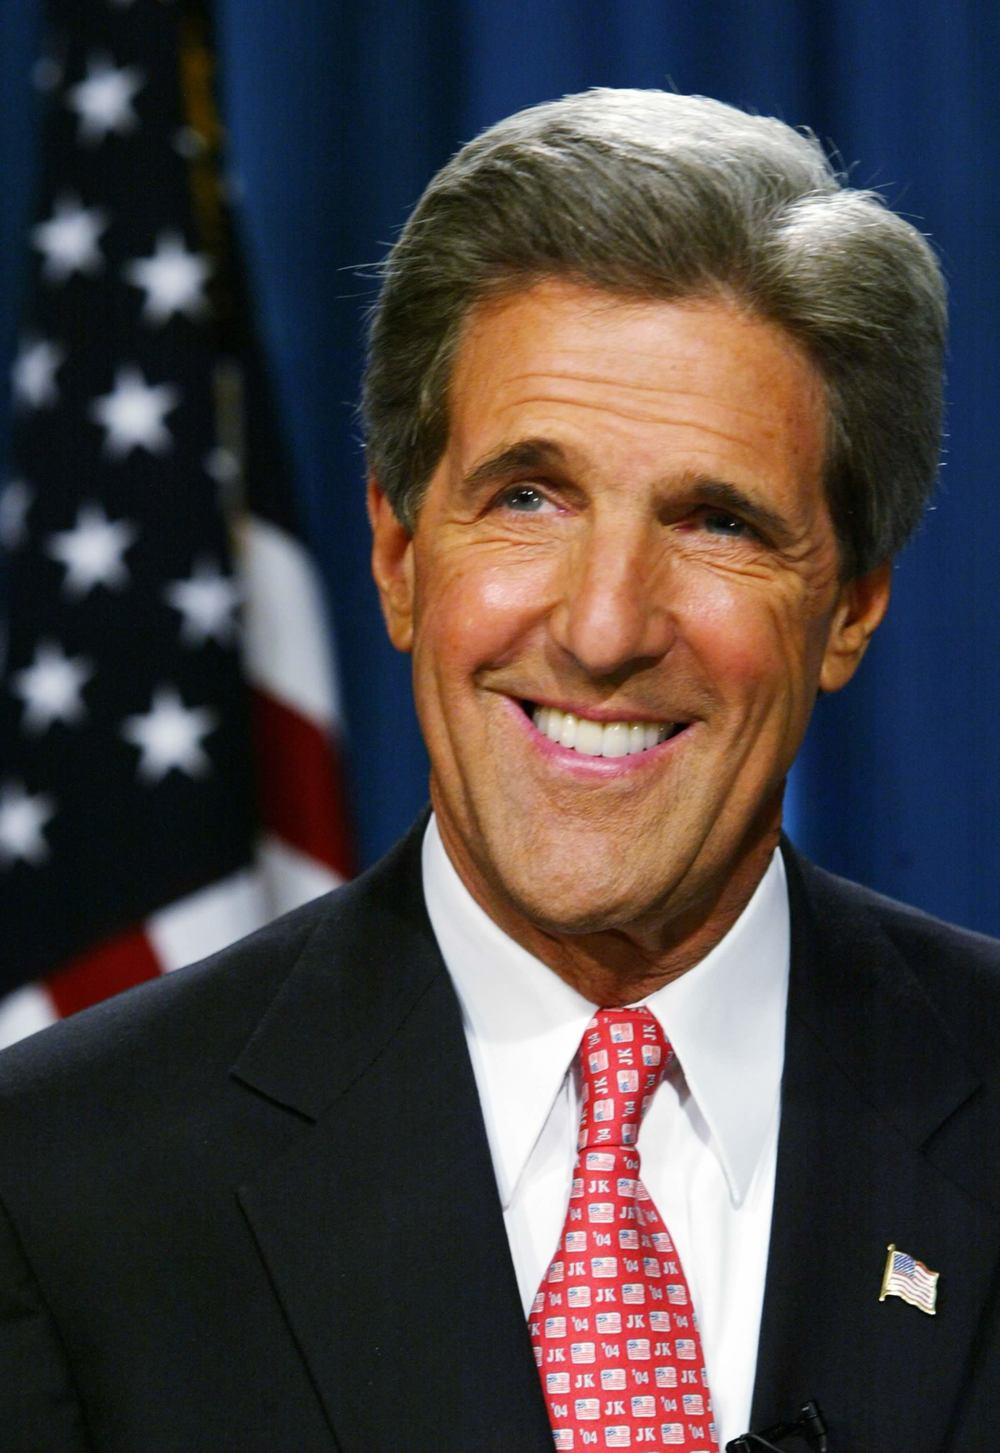 John Kerry. Credit: U.S. Senate.